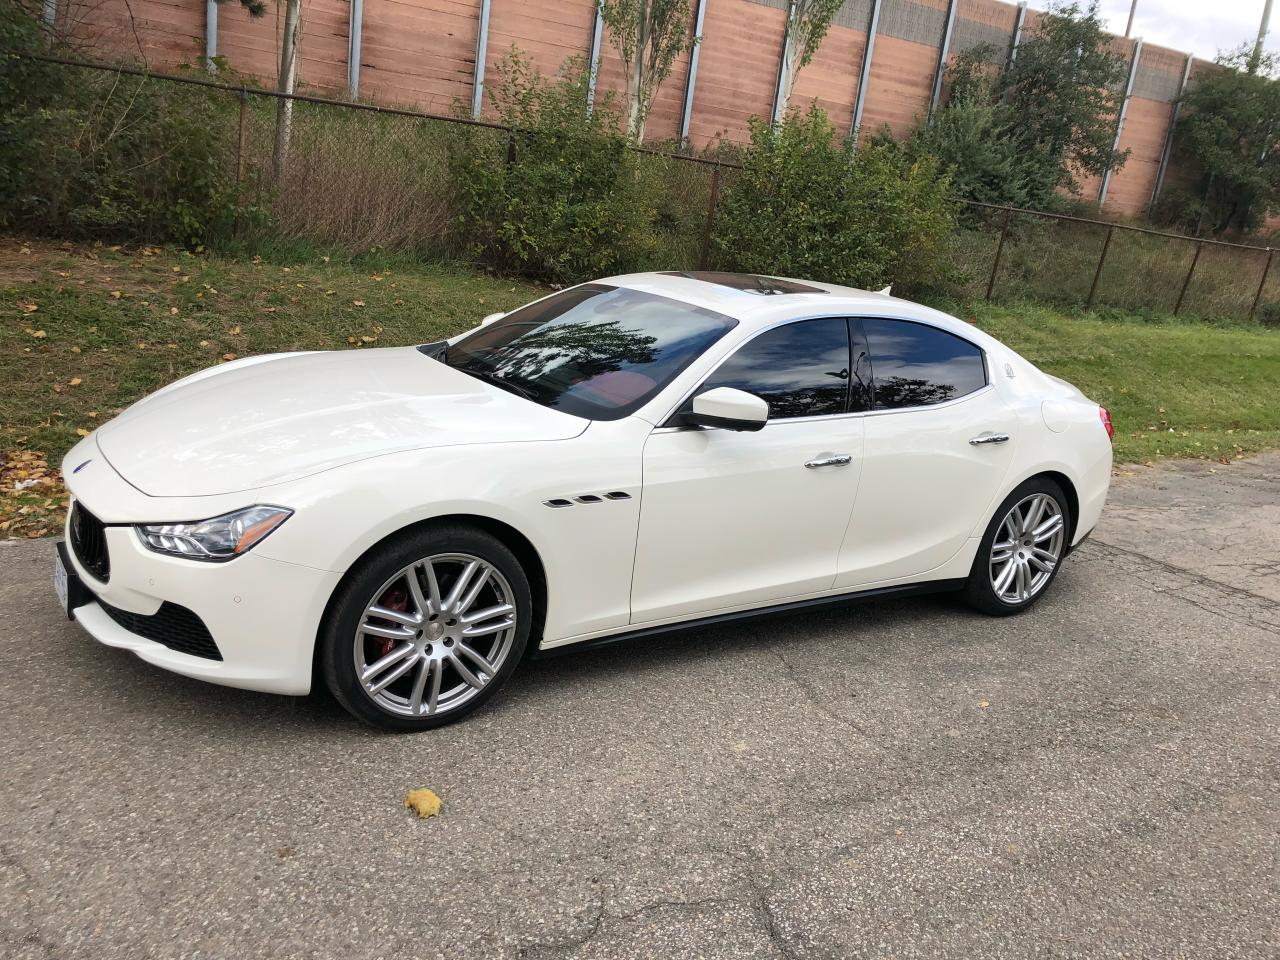 Photo of White 2017 Maserati Ghibli S Q4